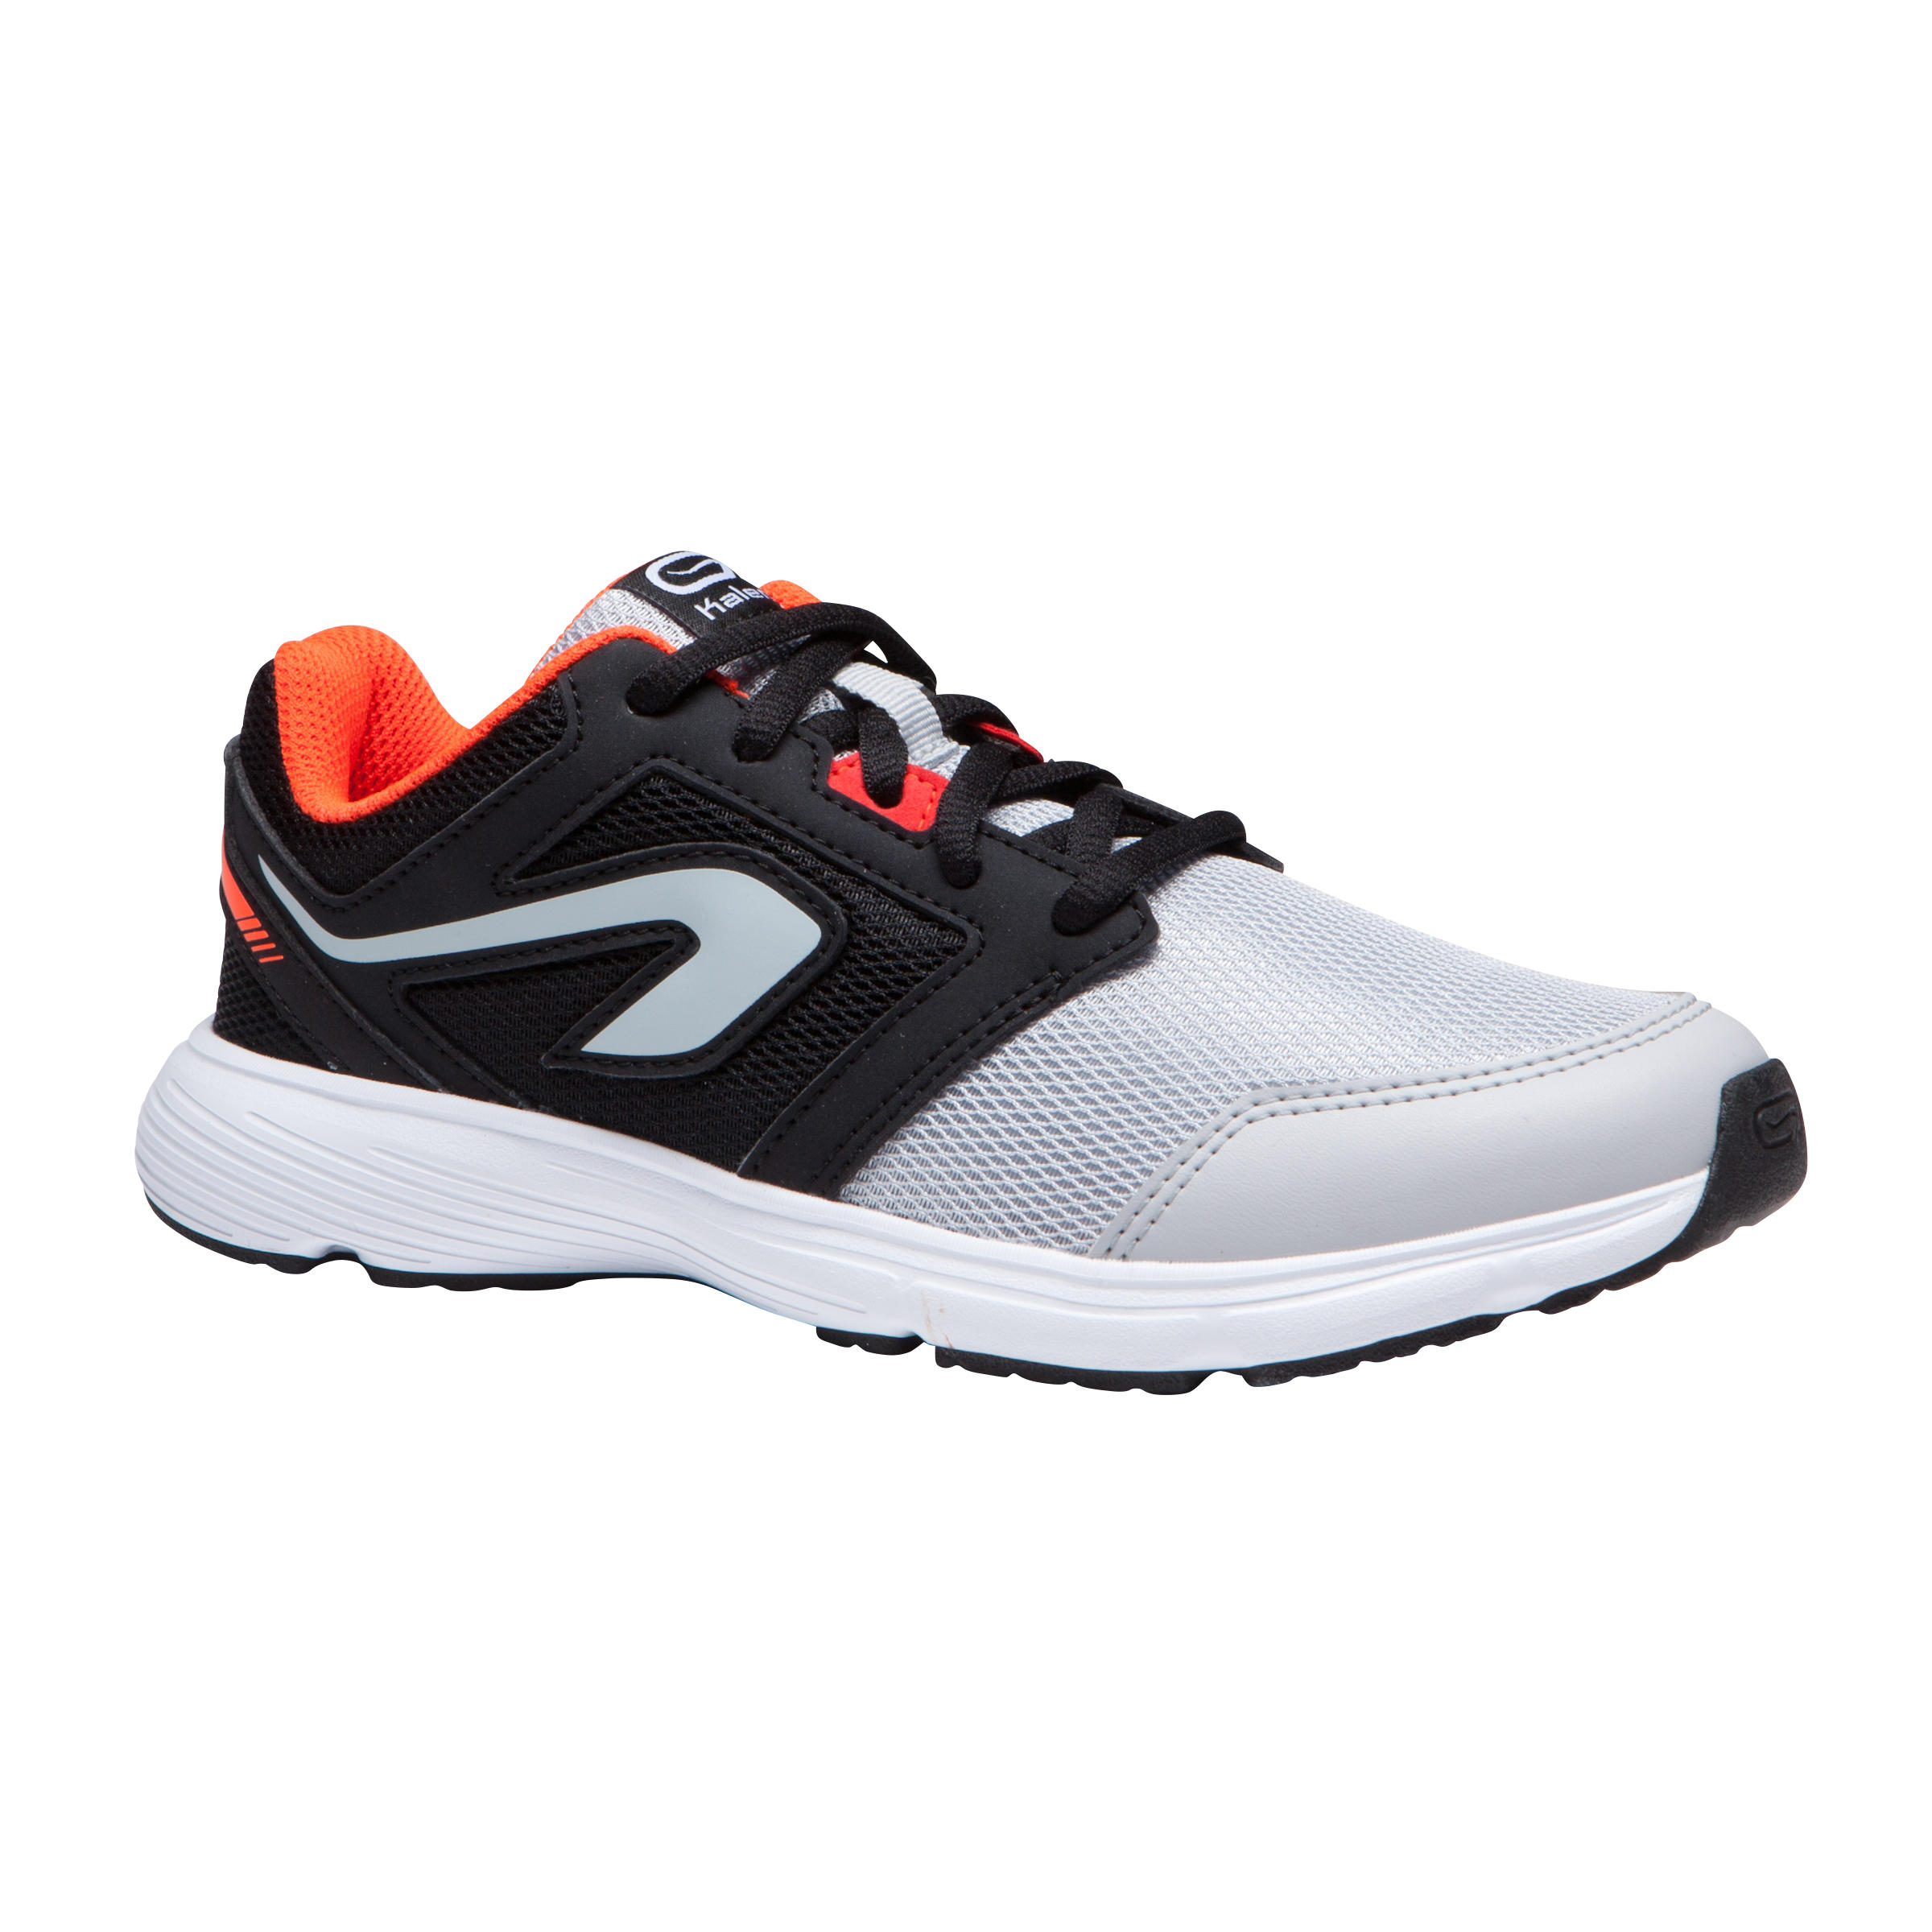 RUN SUPPORT LACES CHILDREN'S ATHLETICS SHOES - BLACK GREY RED